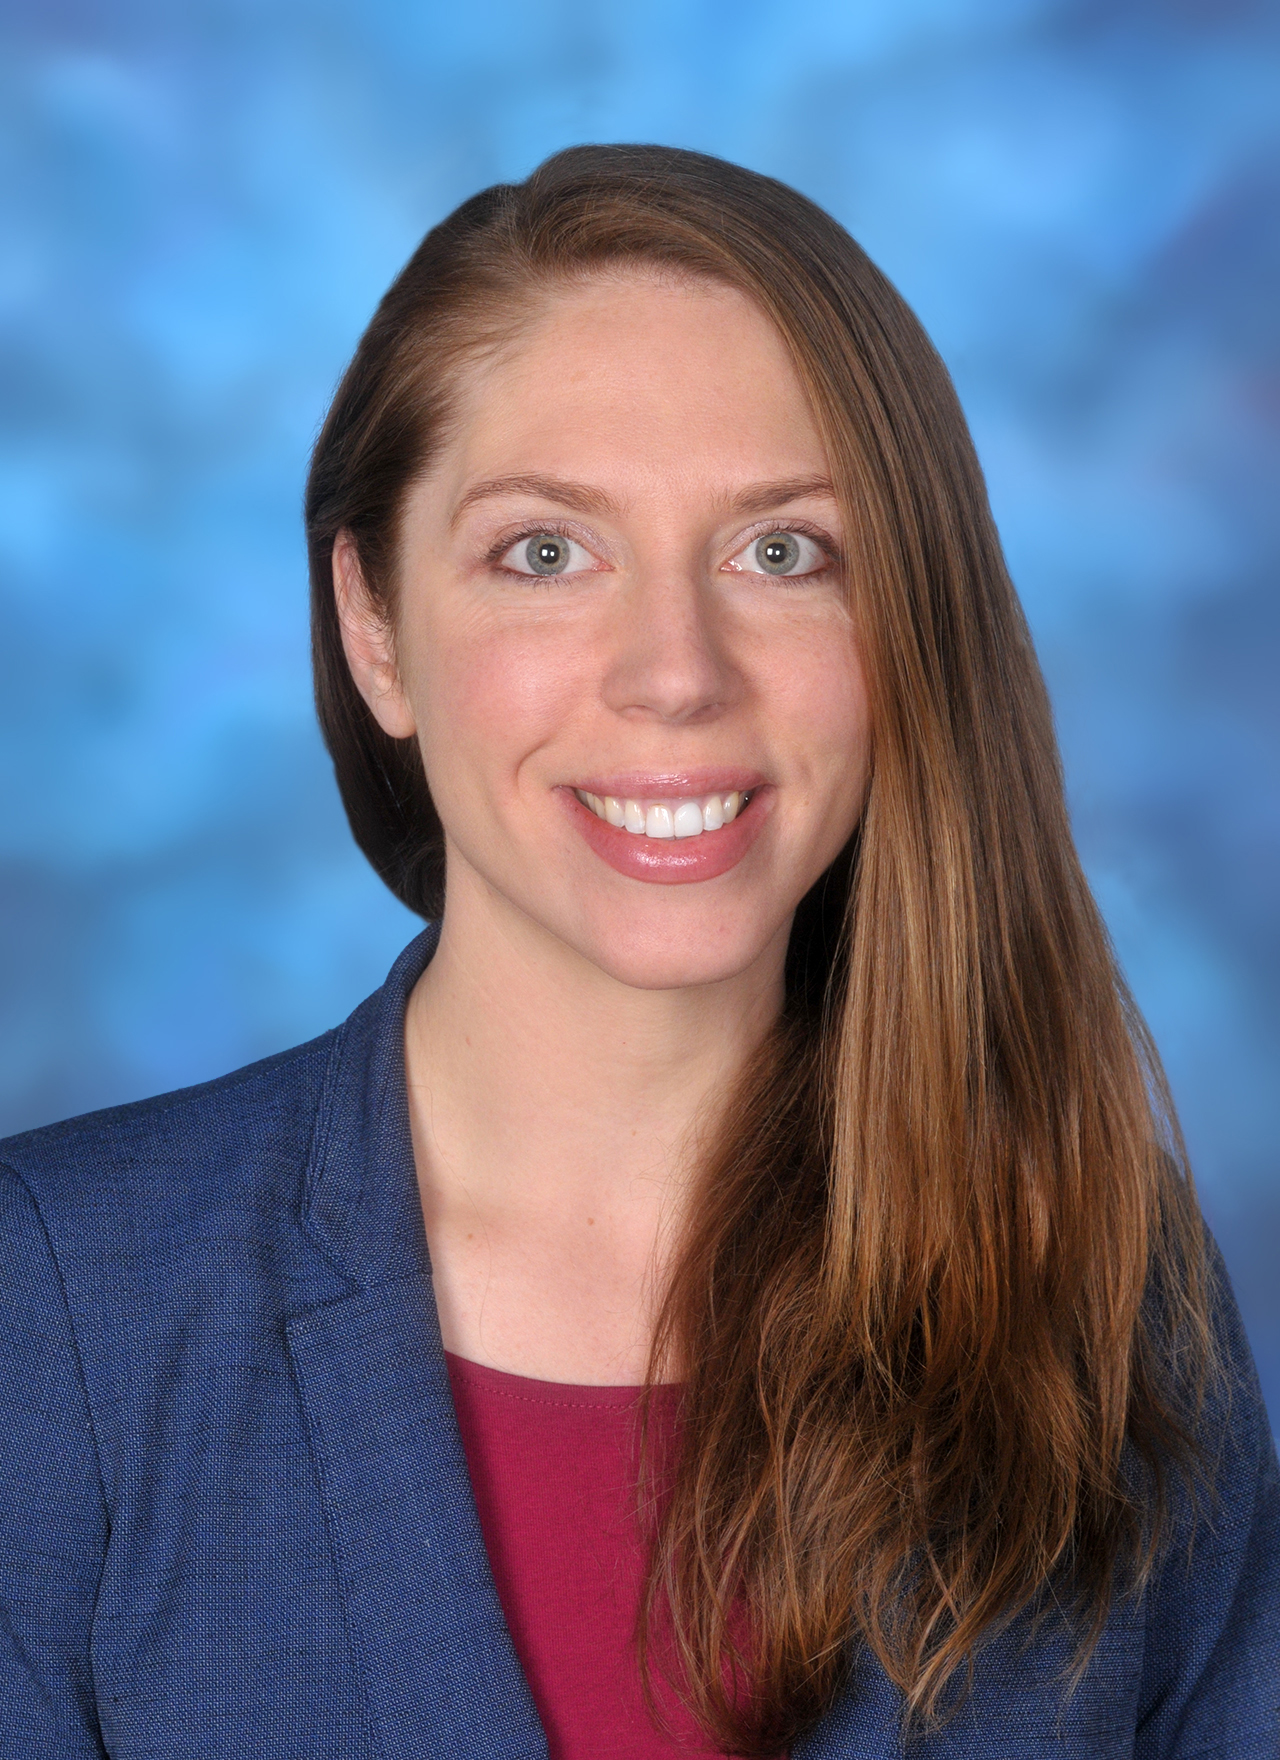 Nora McDermott Tabori, MD - Specializing in vascular and interventional radiology